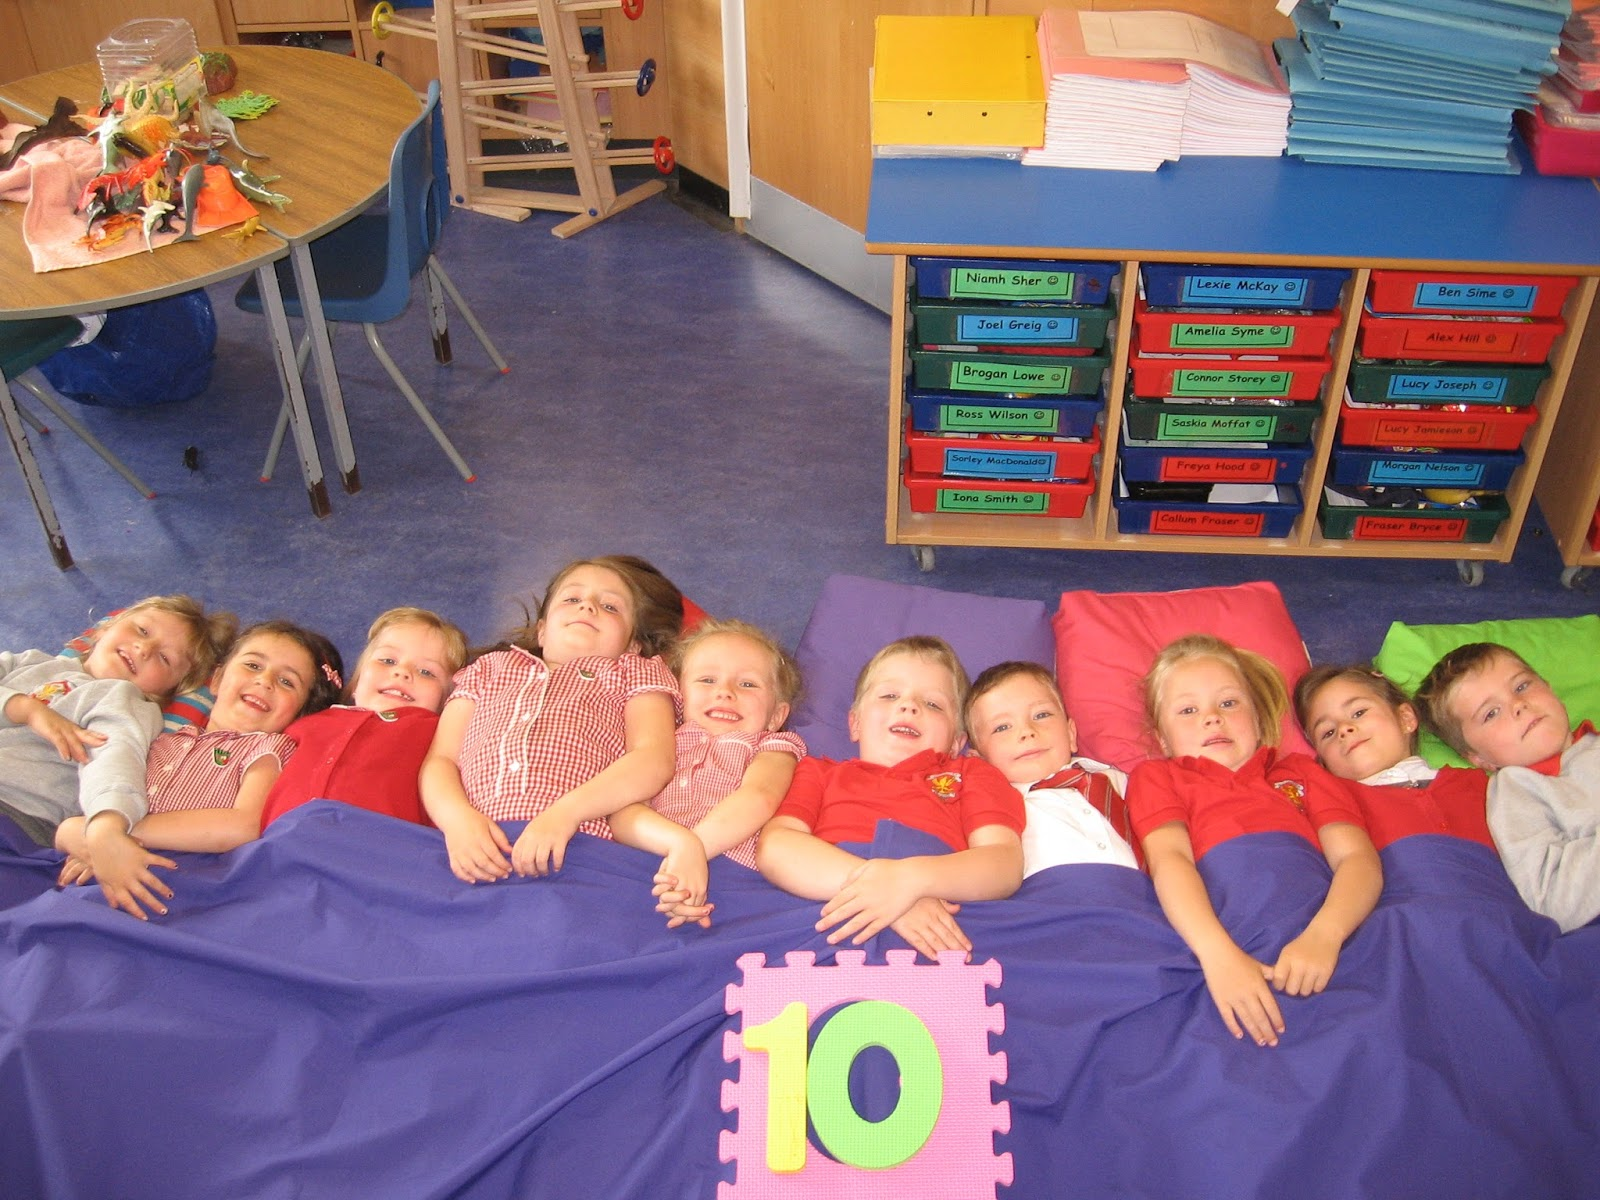 10 In The Bed 28 Images Ten In The Bed Counting Activity Teaching Resource Ten In The Bed